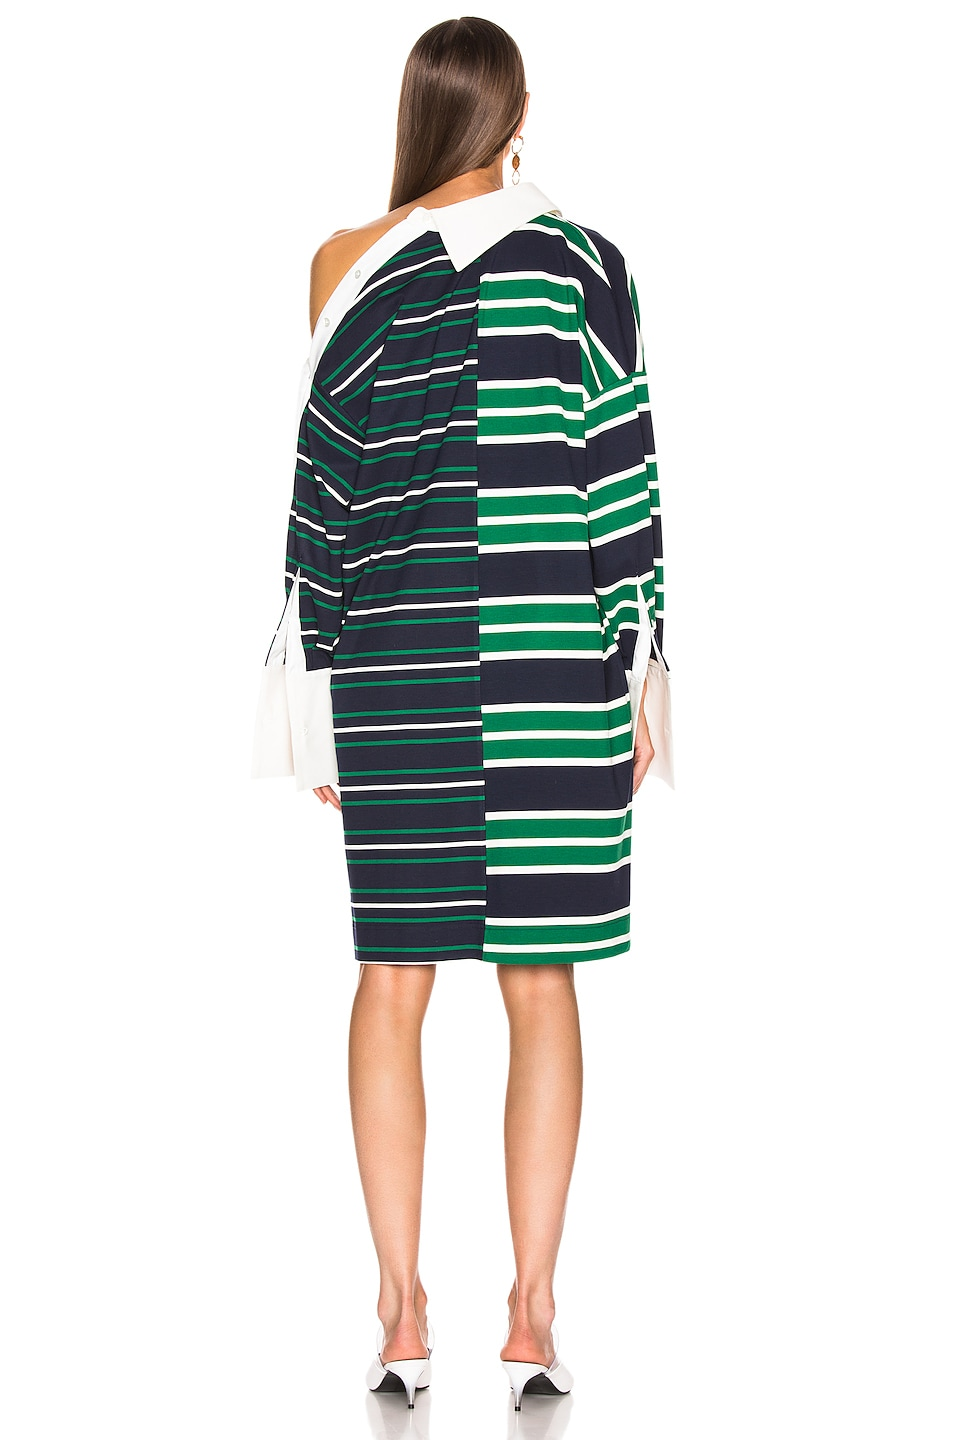 Image 4 of Monse Striped Shifted Rugby Dress in Navy, Green & Ivory